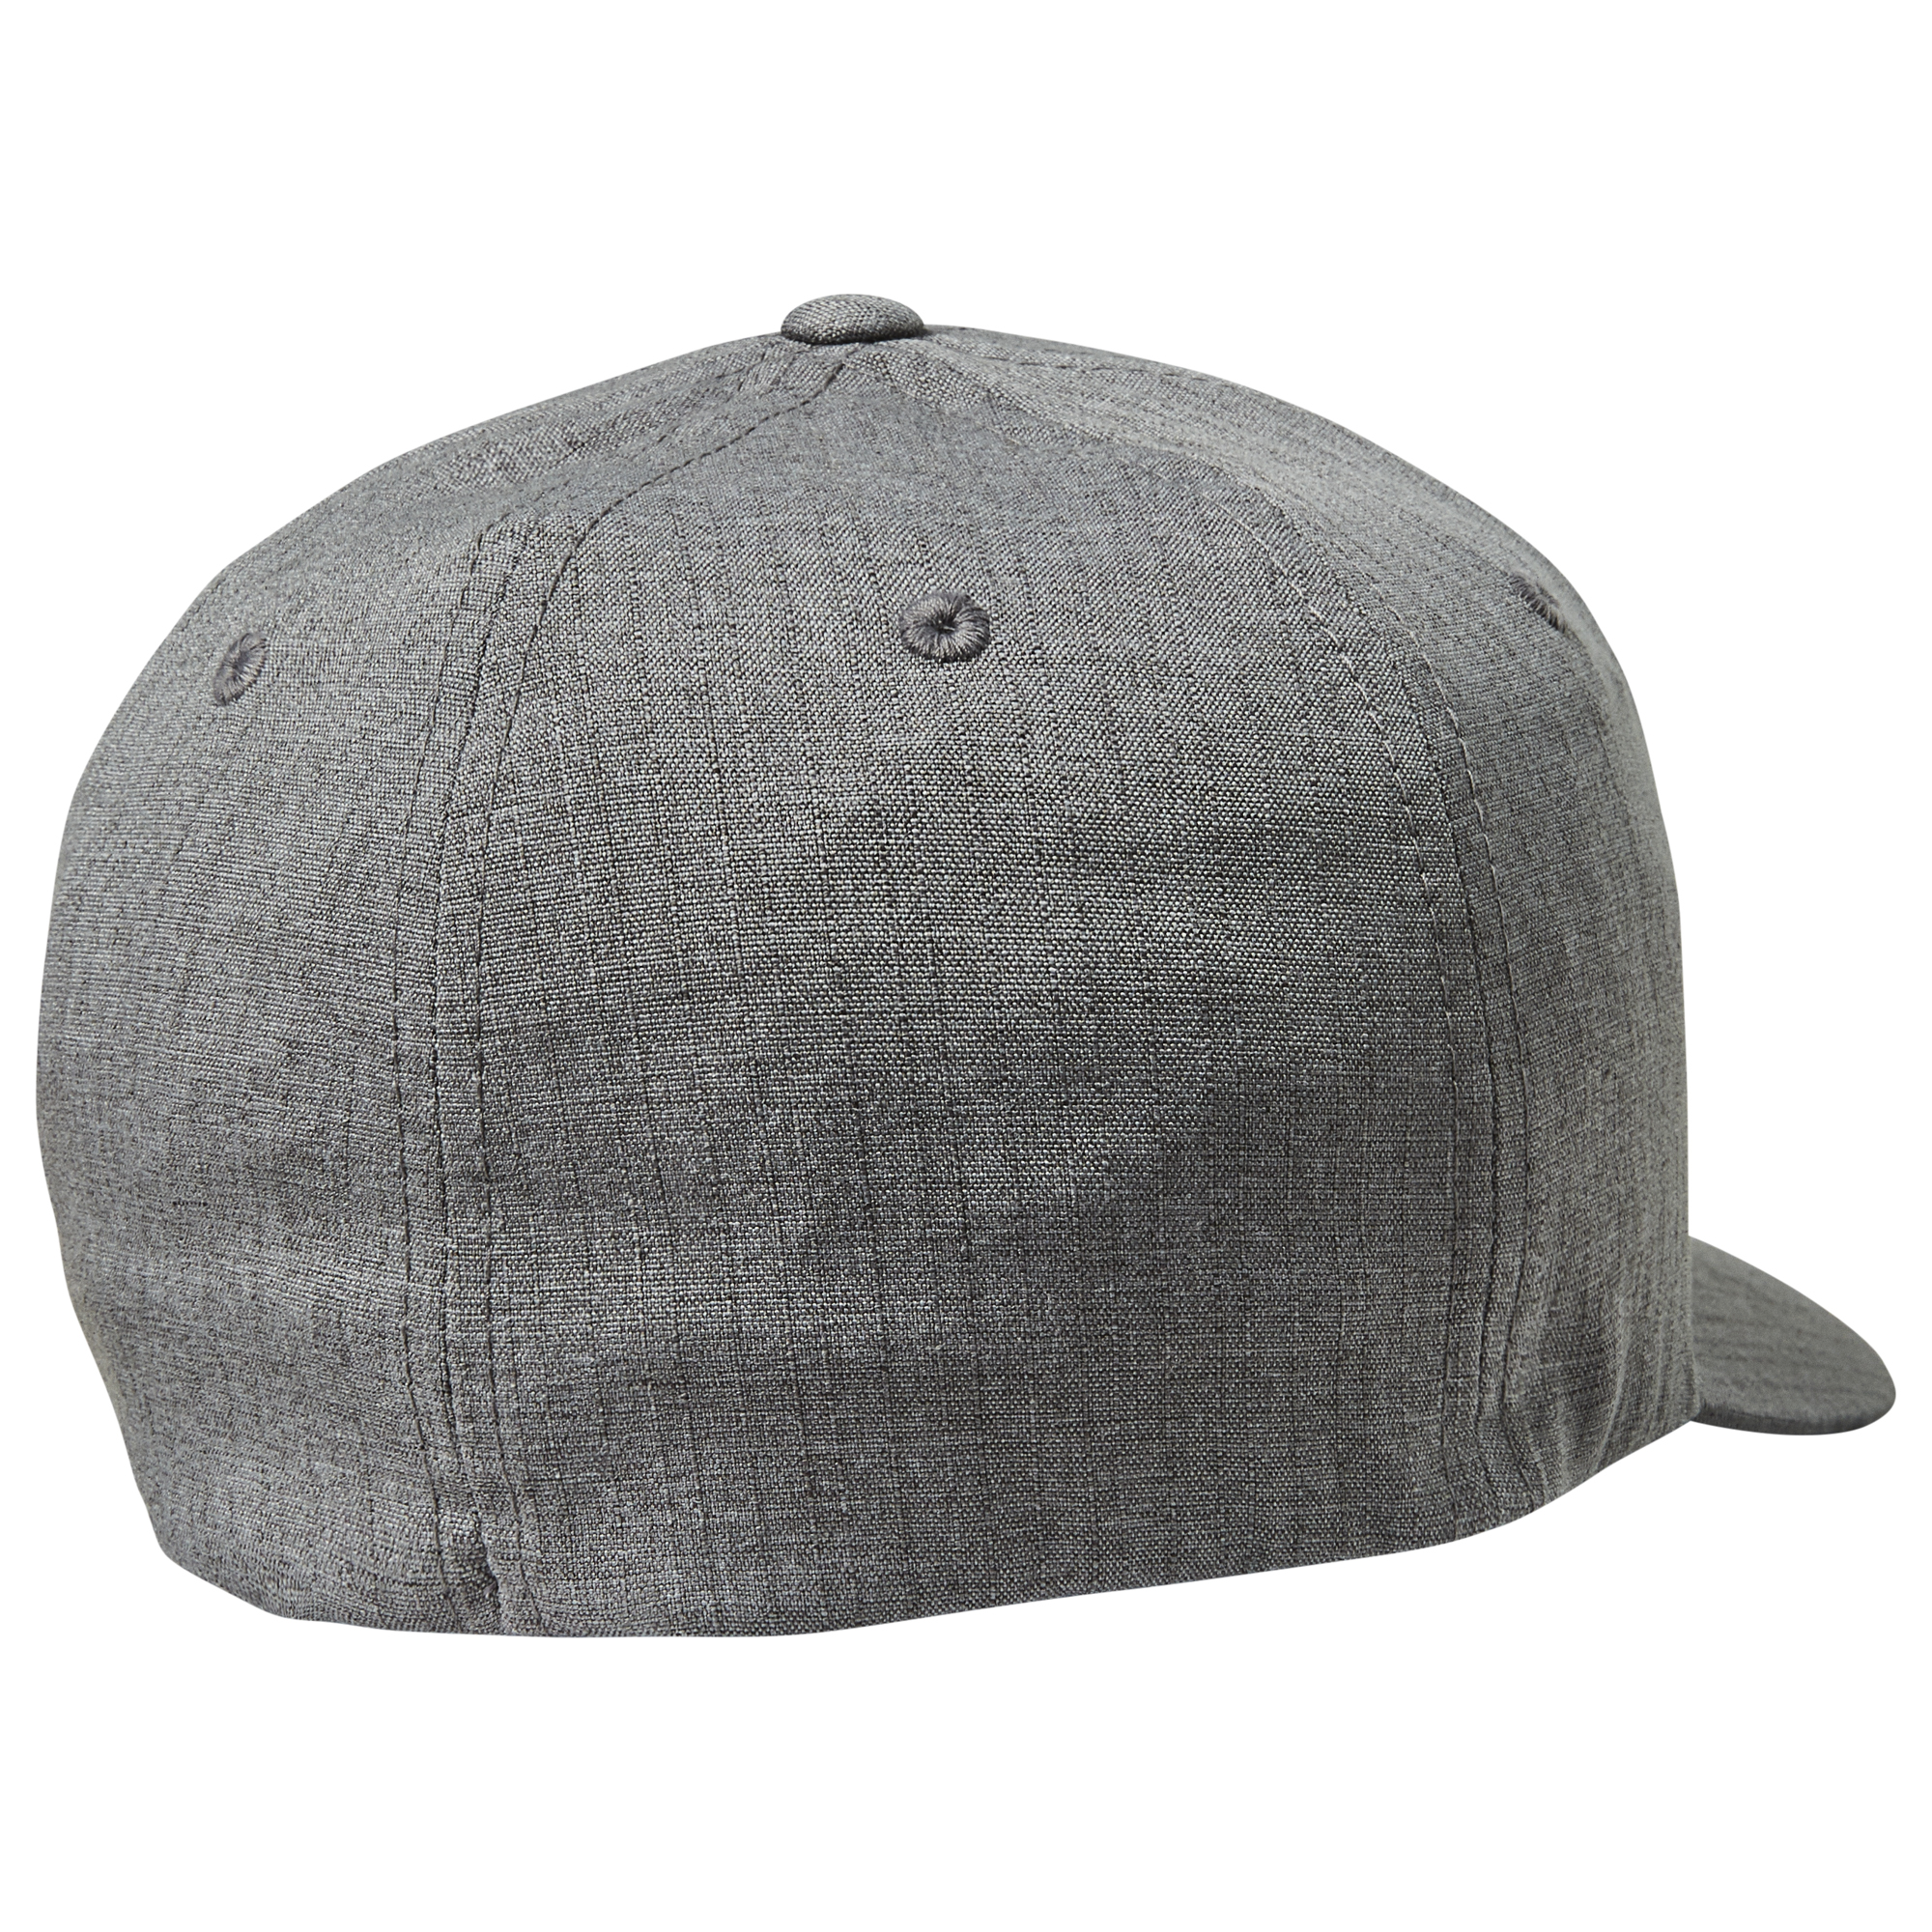 Fox-Racing-Mens-Clouded-Flexfit-Hat-Cap-Stretch-to-fit-Design-Curved-Bill thumbnail 11